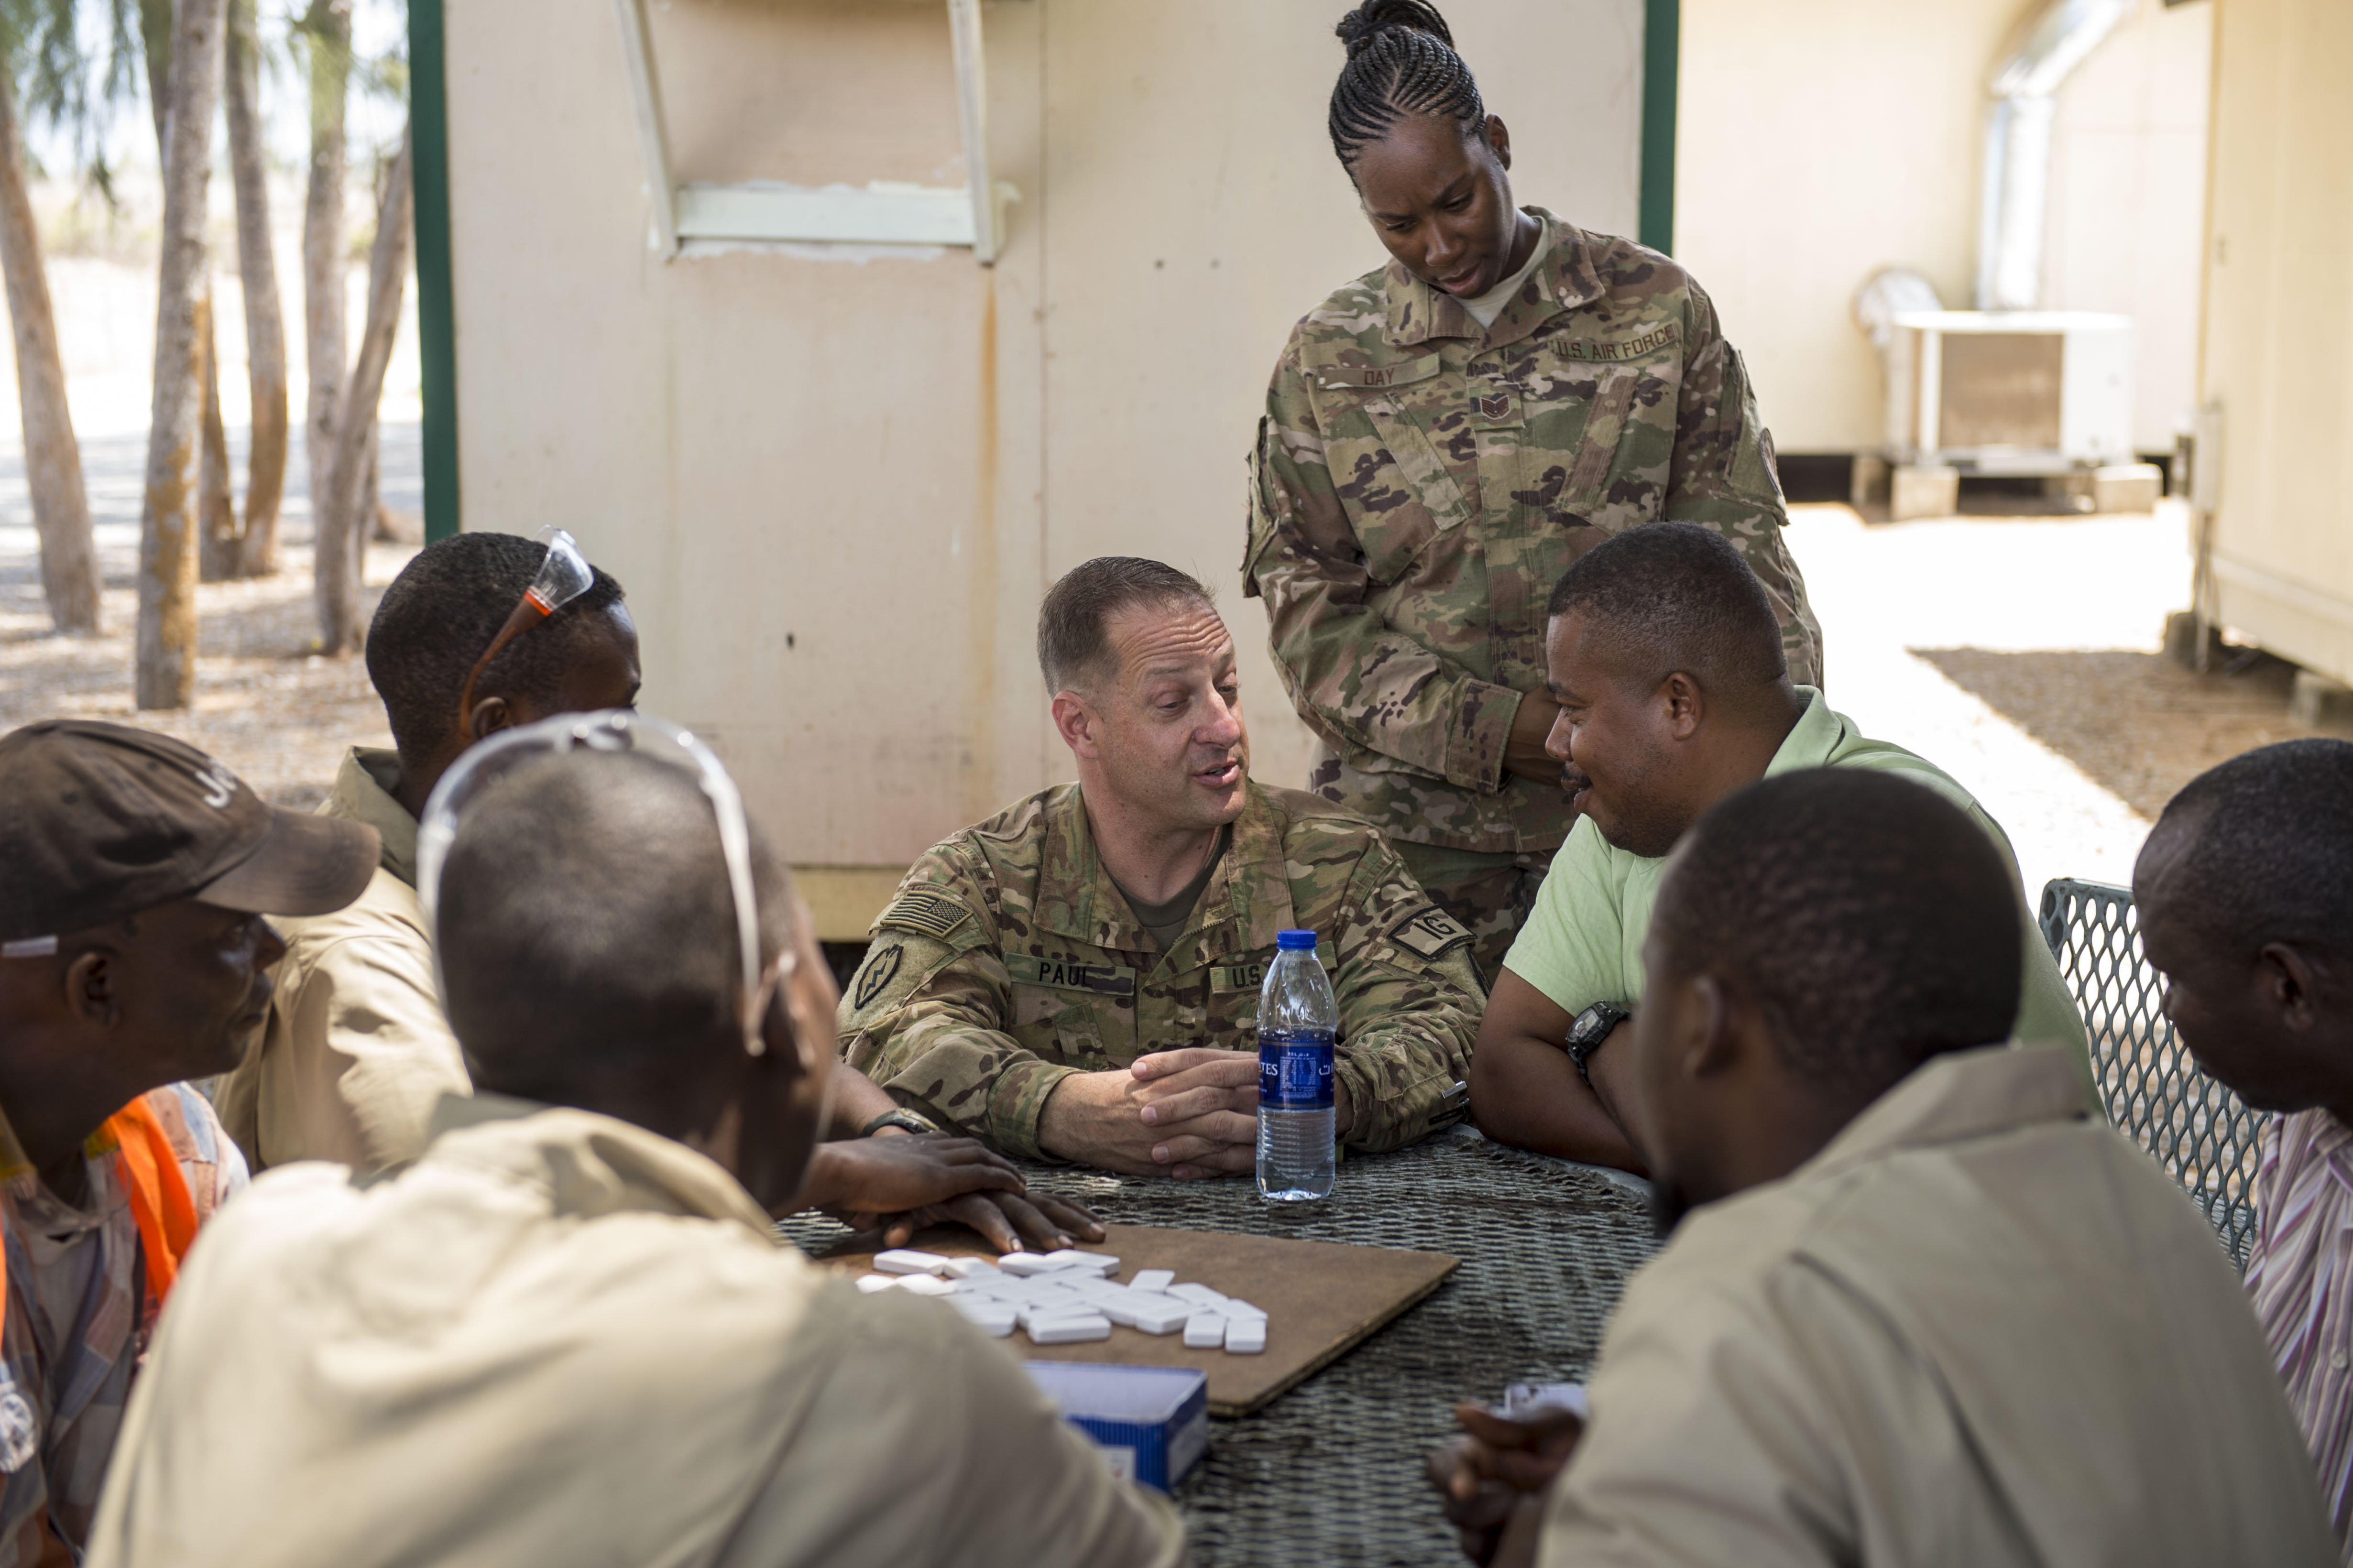 U.S. Army Maj. Robert T. Paul, command inspector general, and U.S. Air Force Tech. Sgt. Starr Day, assistant inspector general, talk with local national contractors during a battlefield circulation site visit at Camp Simba in Manda Bay, Kenya, Feb. 24, 2018. While assigned to the Combined Joint Task Force - Horn of Africa Inspector General directorate, Paul and Day provide support to the service members, Department of Defense civilians, and local national and third-country national contractors who work on the camp. Though many of the members at the camp don't fall under CJTF-HOA's command, many of the concerns that affect the CJTF-HOA personnel also affect them and vice versa. (U.S. Air Force photo by Staff Sgt. Timothy Moore)